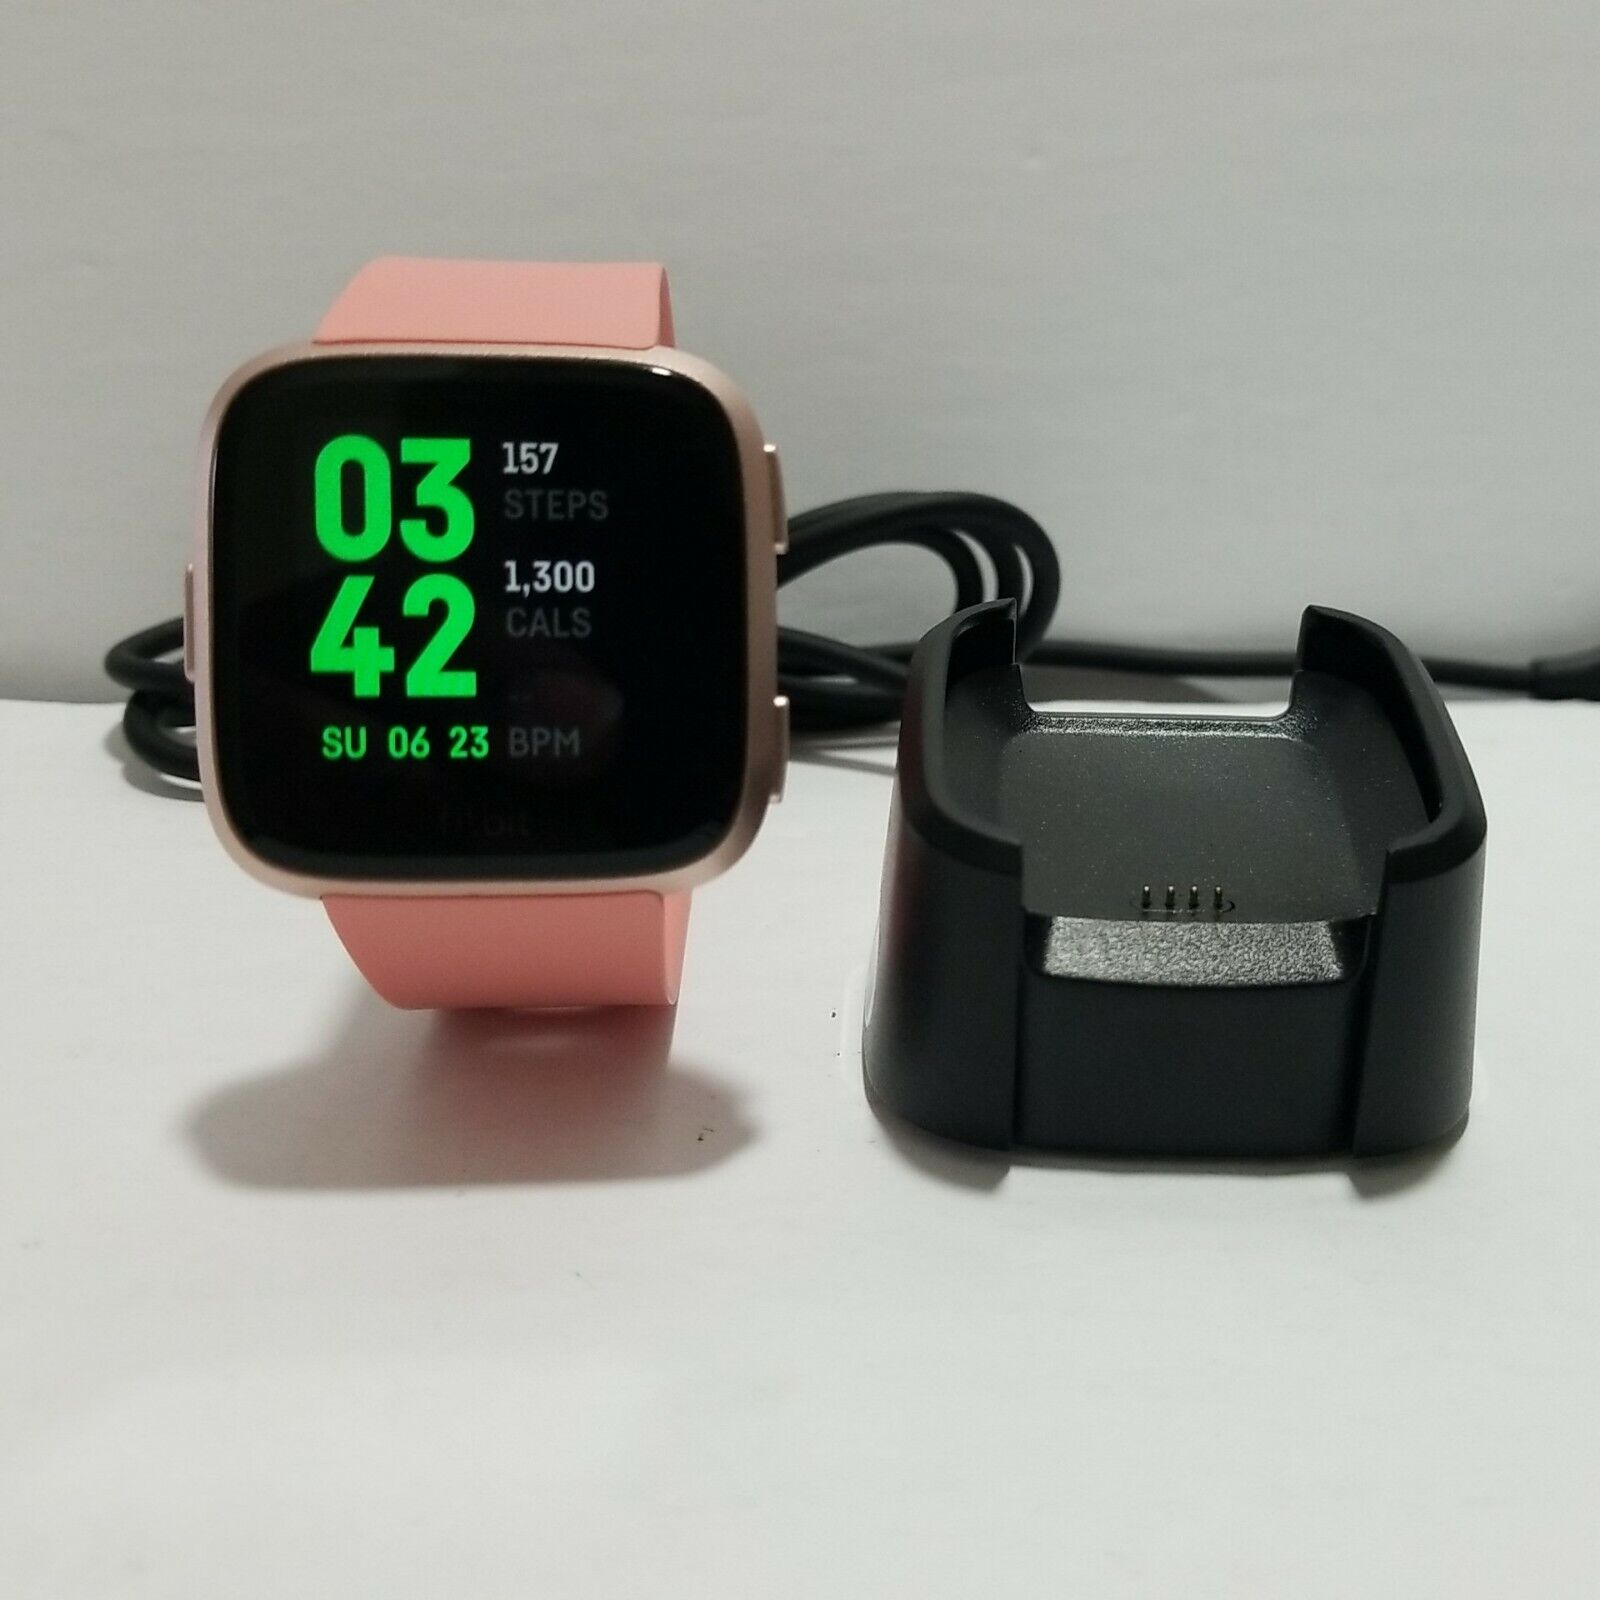 Fitbit Versa SE Fitness Activity Tracker - Rose Gold Small Pink Band, Charger